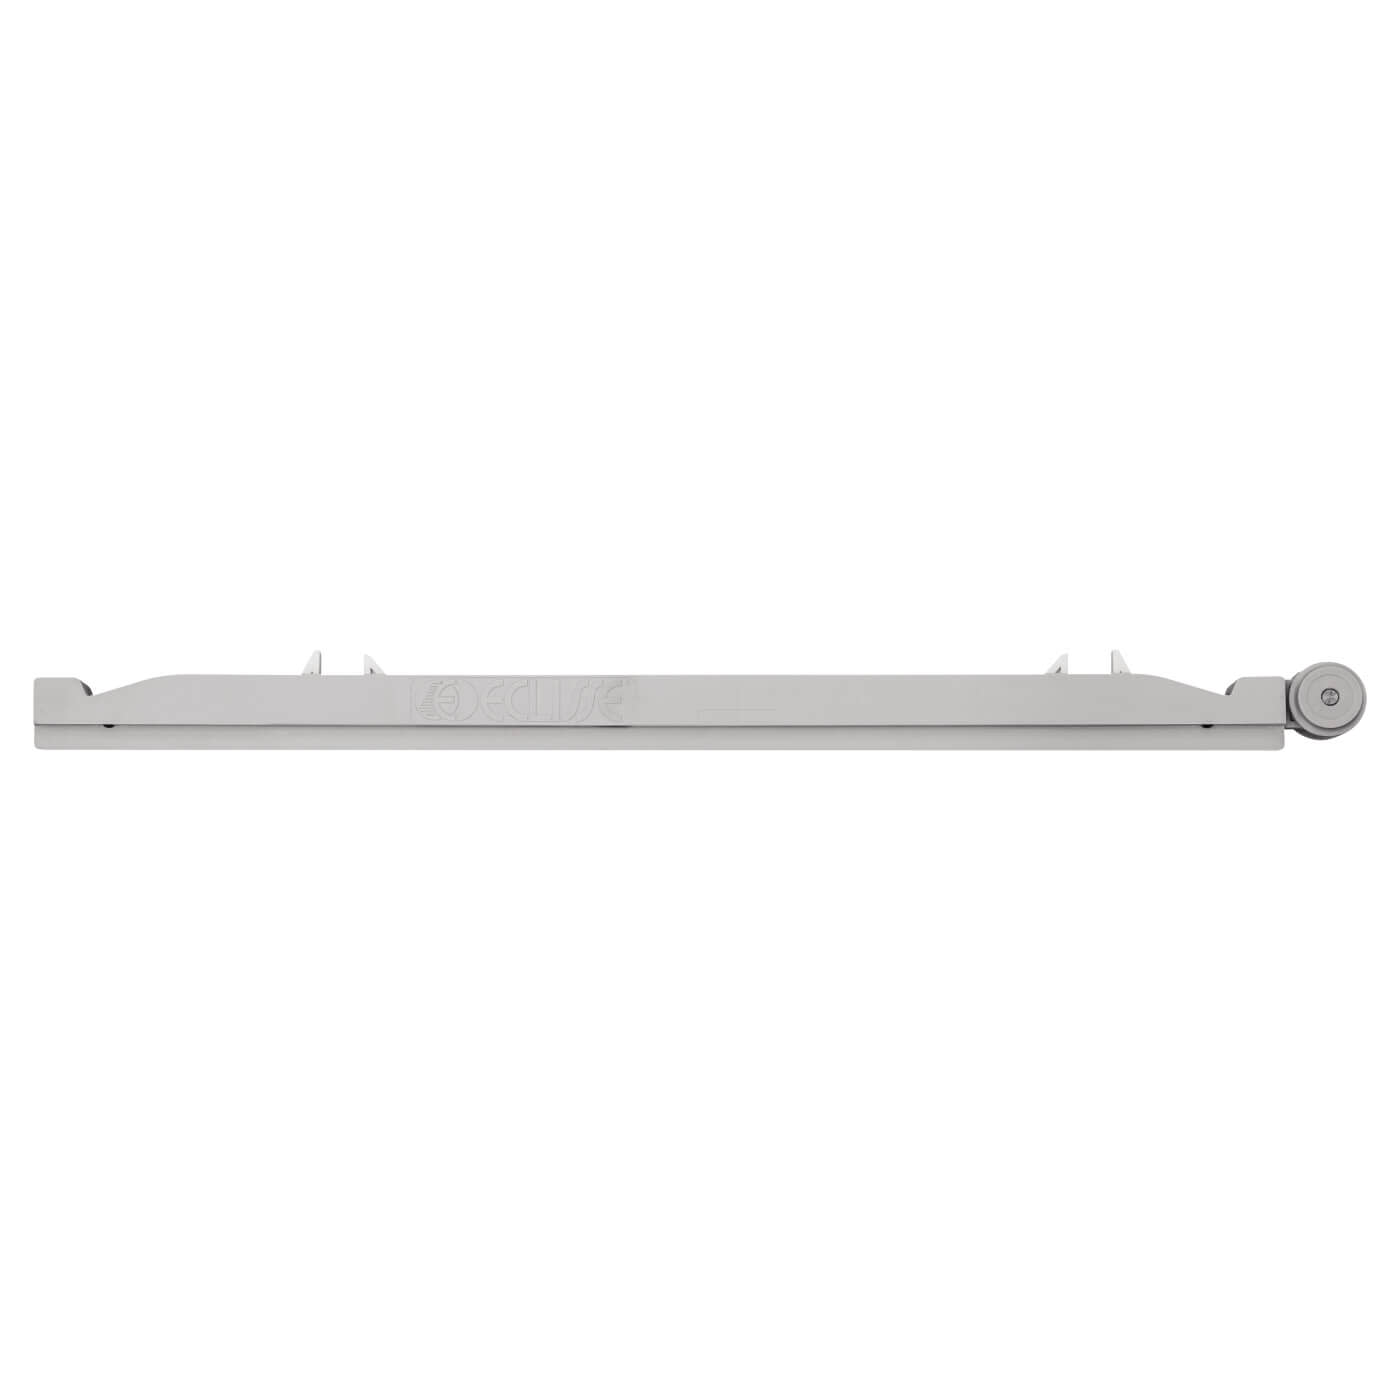 Eclisse Bi-Directional Soft Close with Anti-Slam Device for Eclisse Pocket Door Kits)